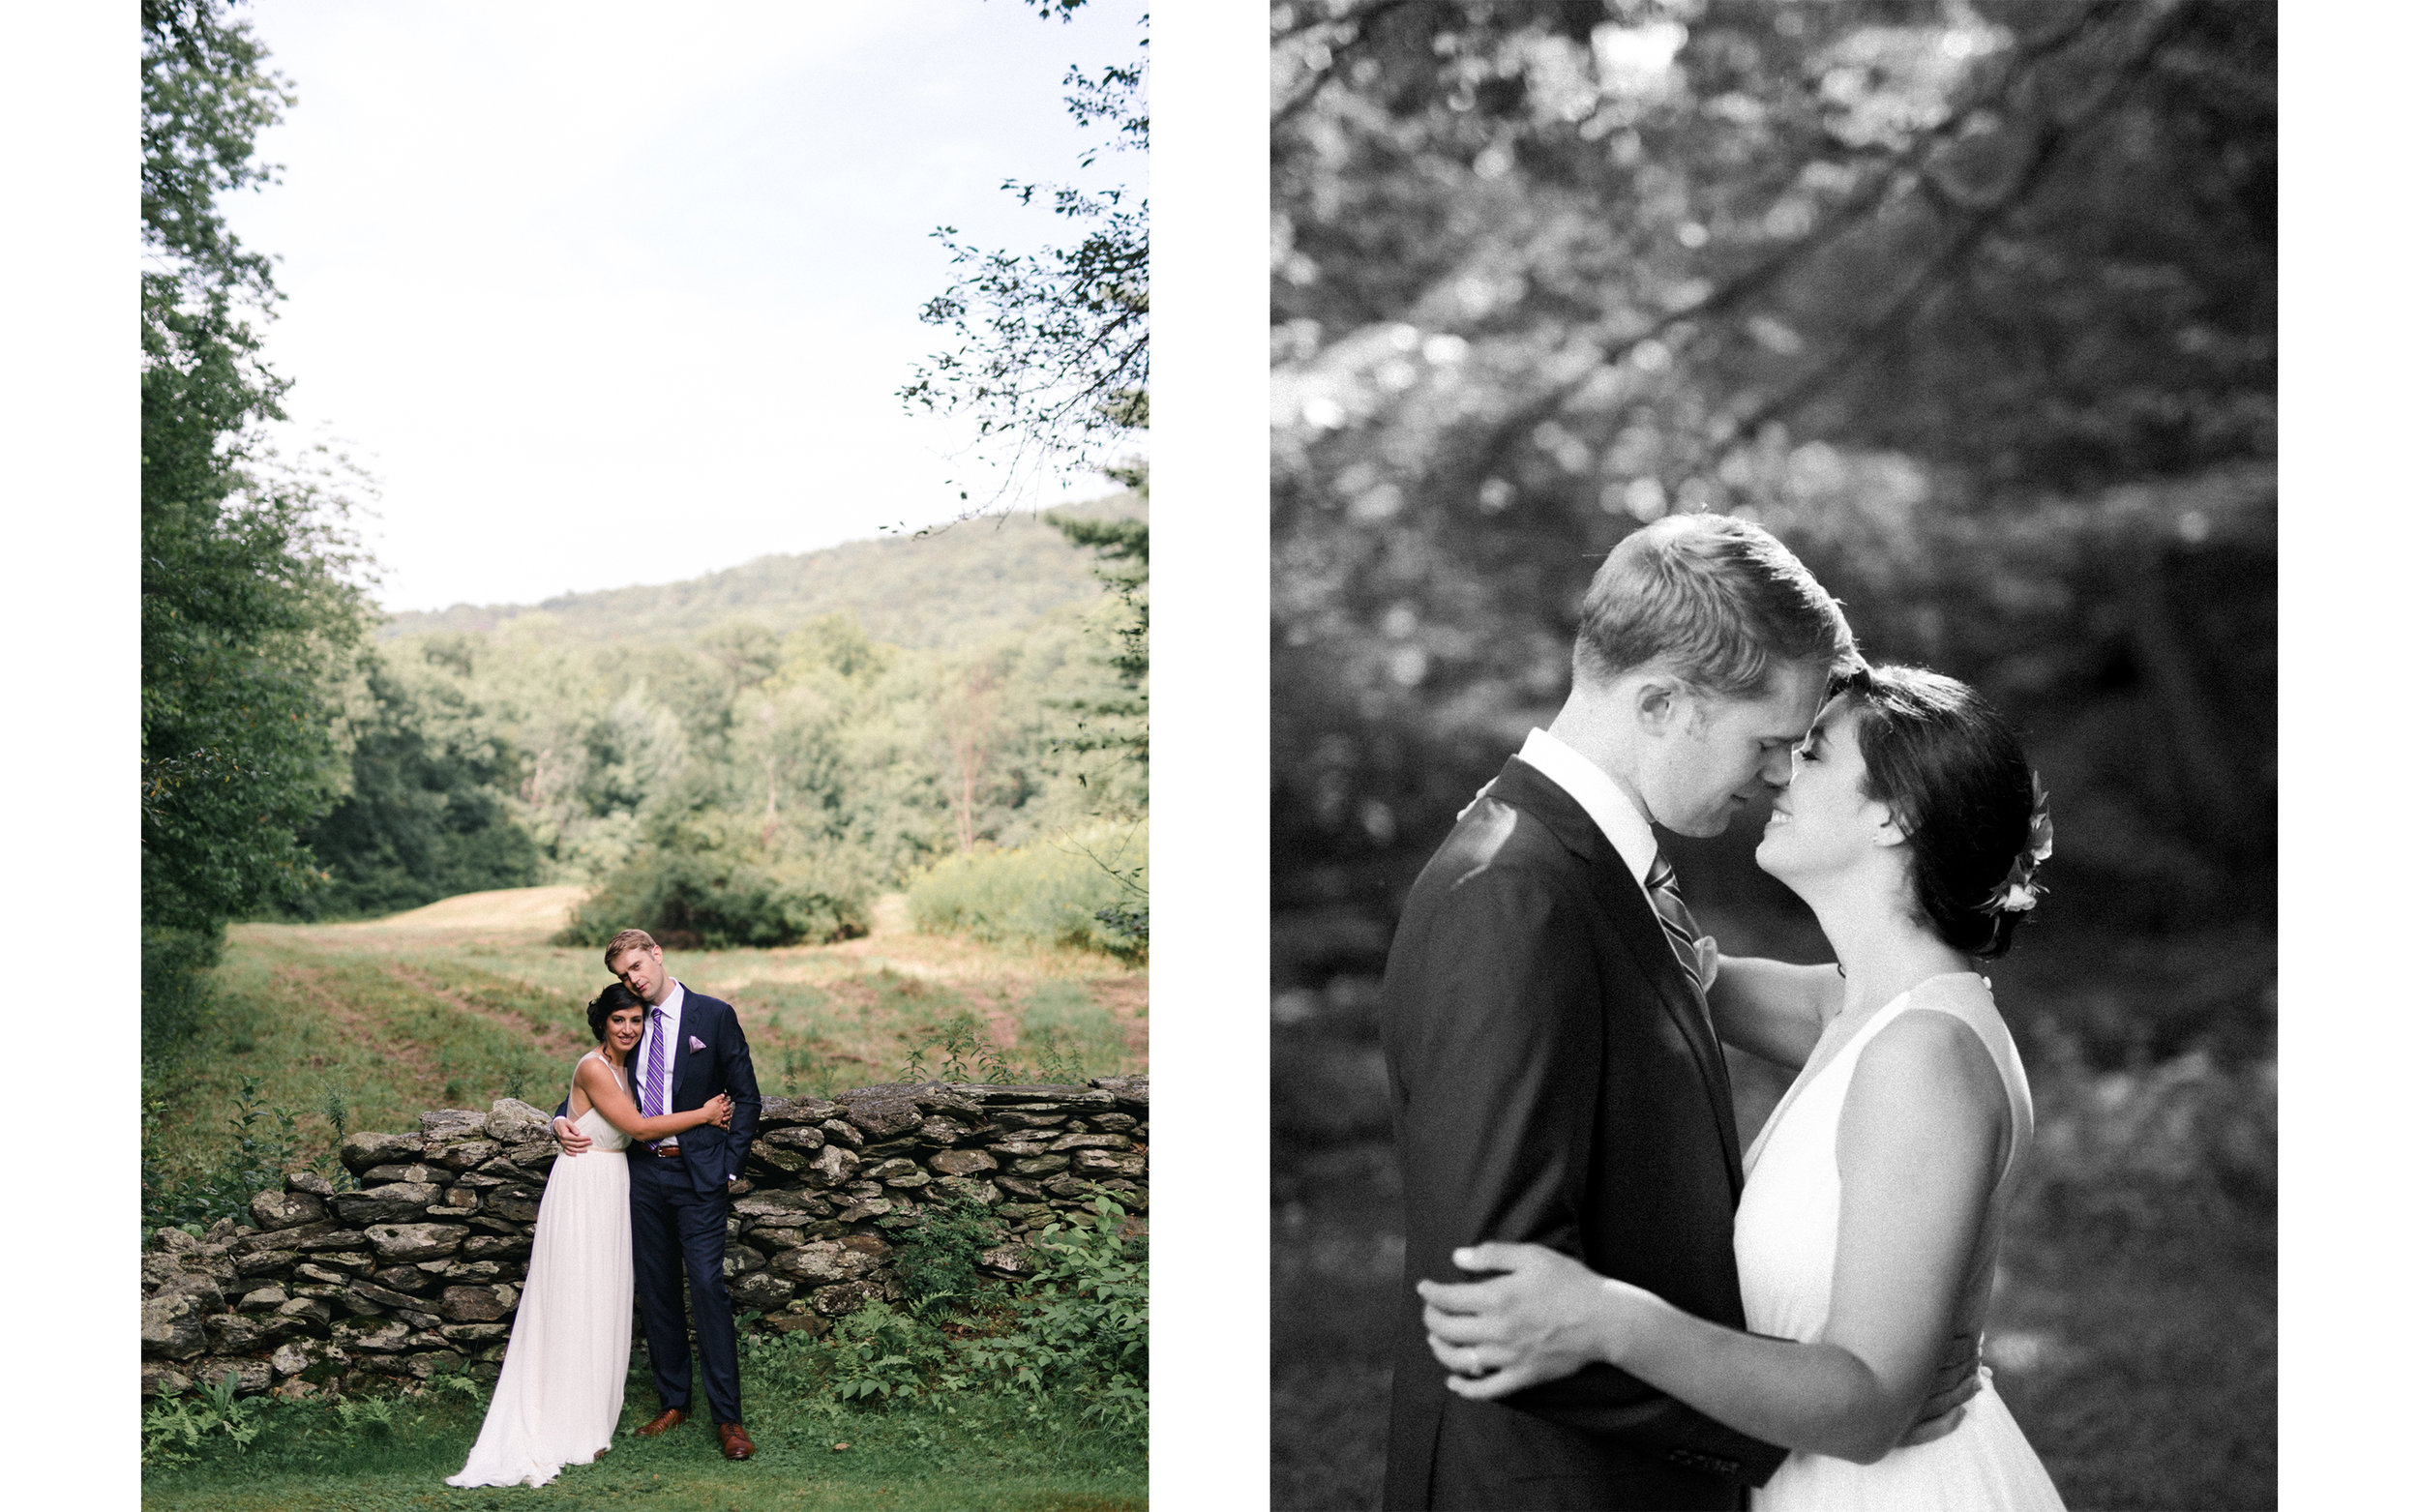 Berkshires Wedding Fine Art Wedding Photographer_Meg Haley Photographs_062.jpg